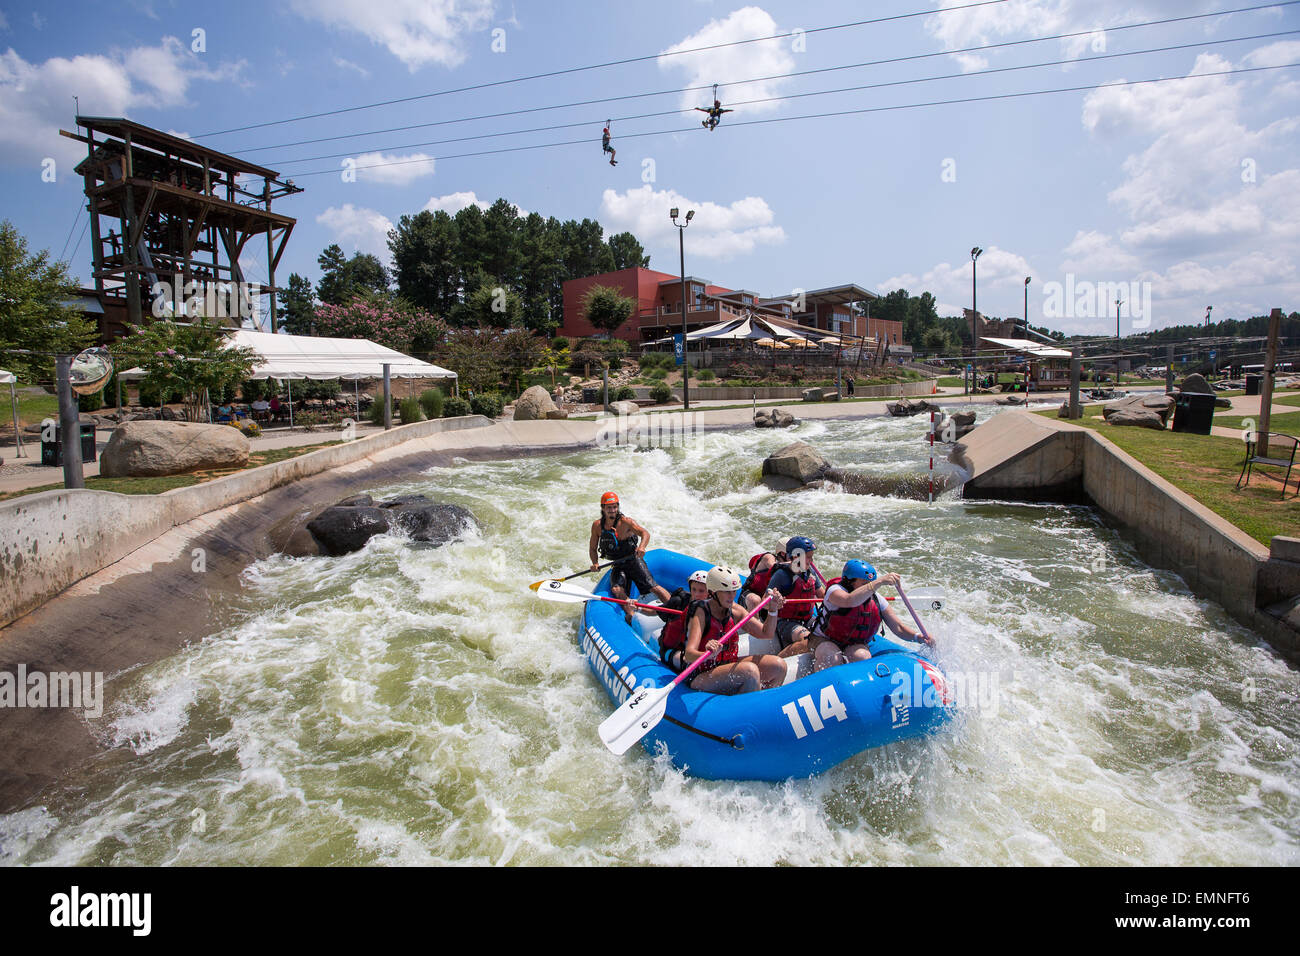 People enjoy the U.S. National Whitewater Center in Charlotte, NC. Stock Photo